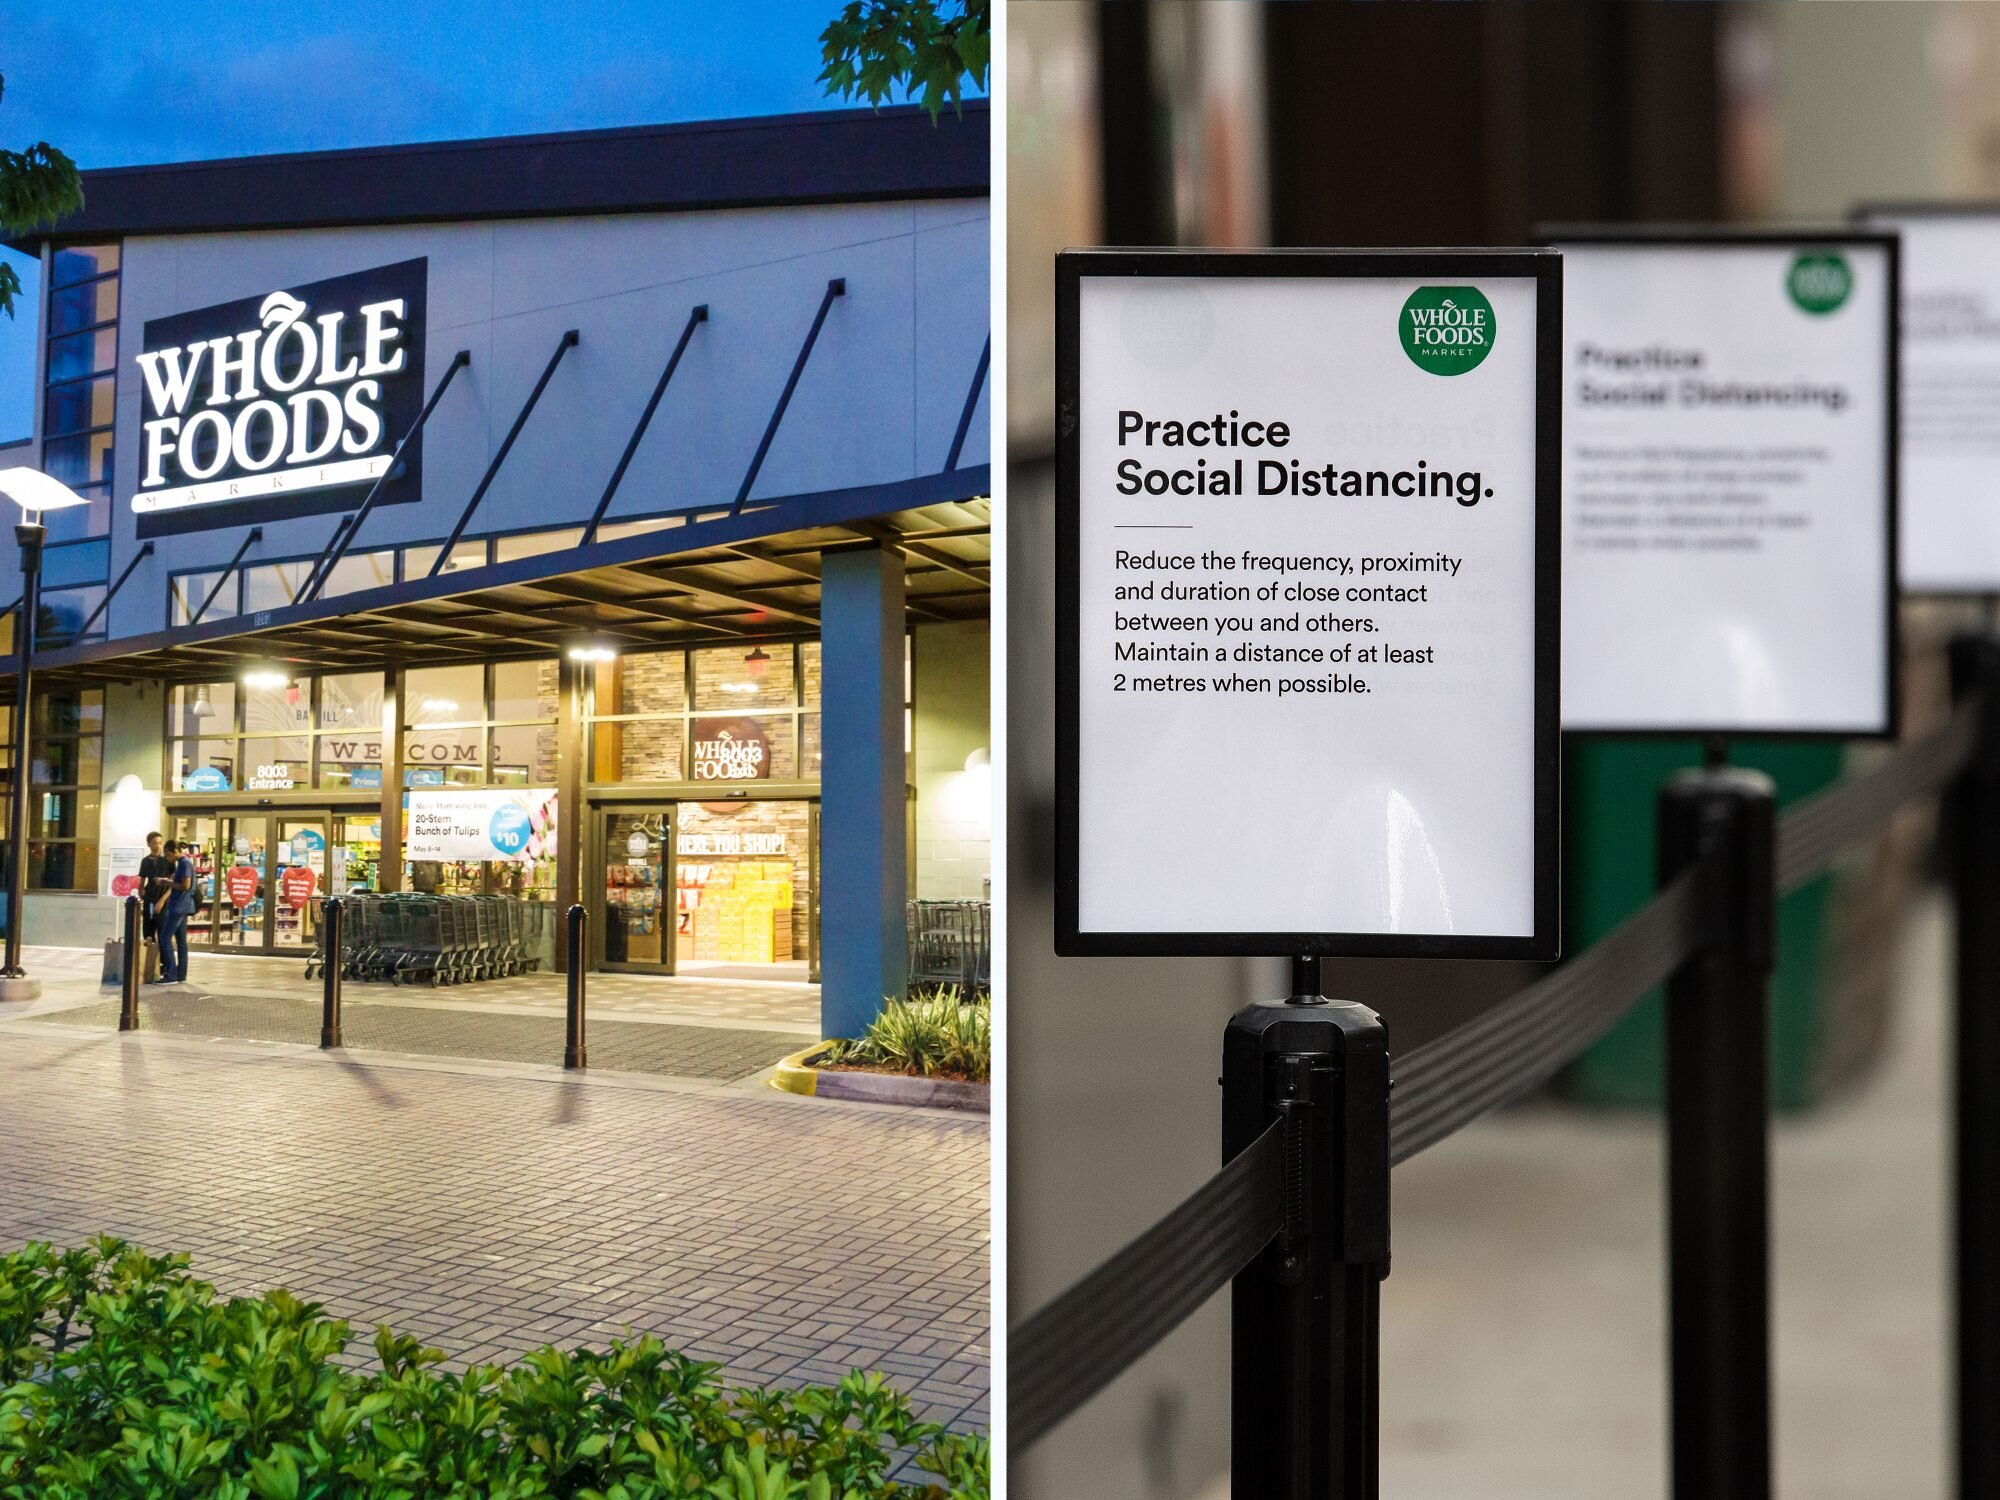 Whole Foods Ranks #1 for Covid-19 Safety Measures, According to a New Report